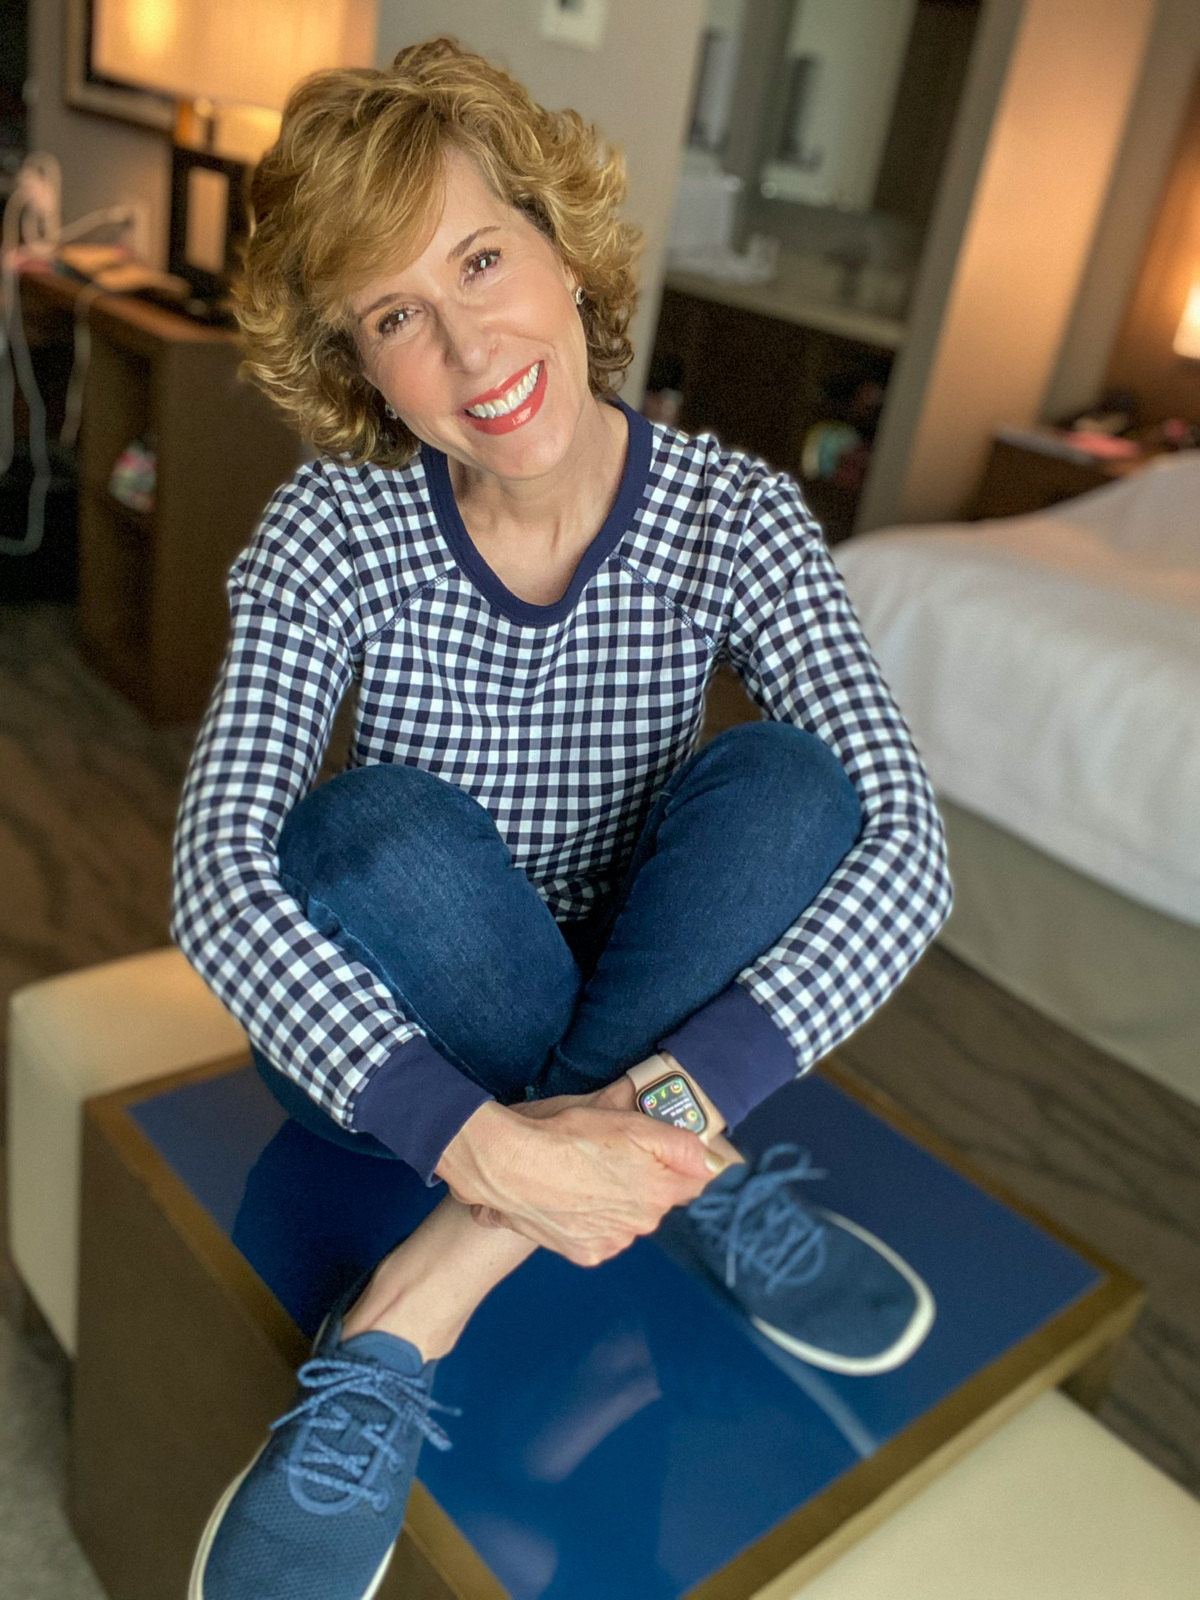 woman in navy blue gingham sweatshirt and jeans sitting on a table